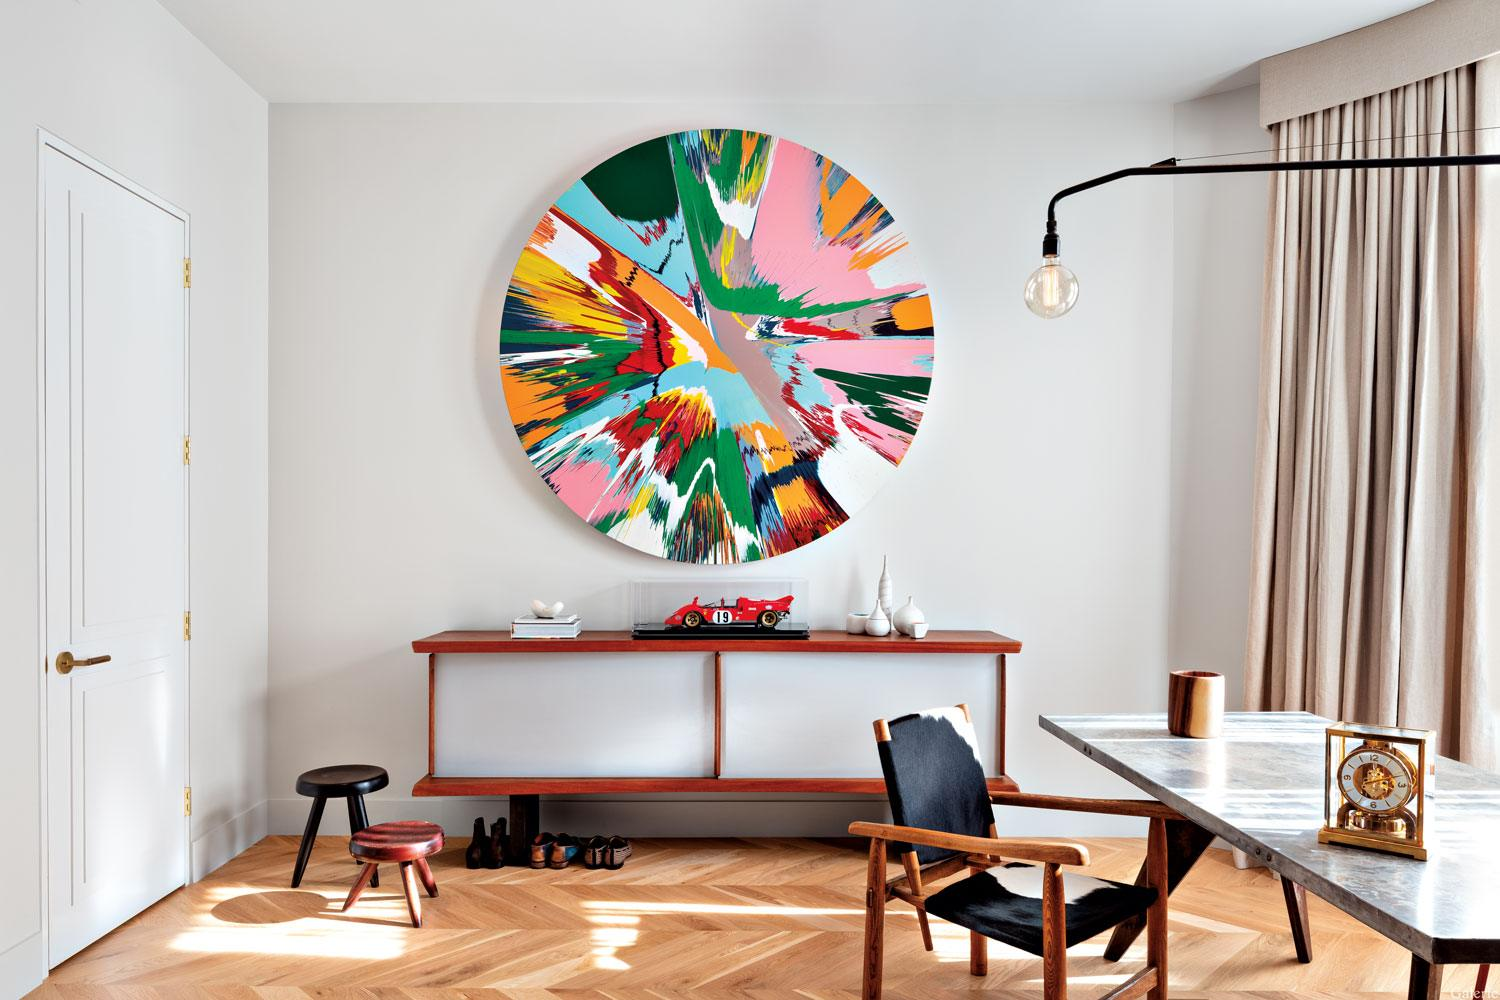 A Damien Hirst spin painting in Tina Kim's Upper West Side townhouse.